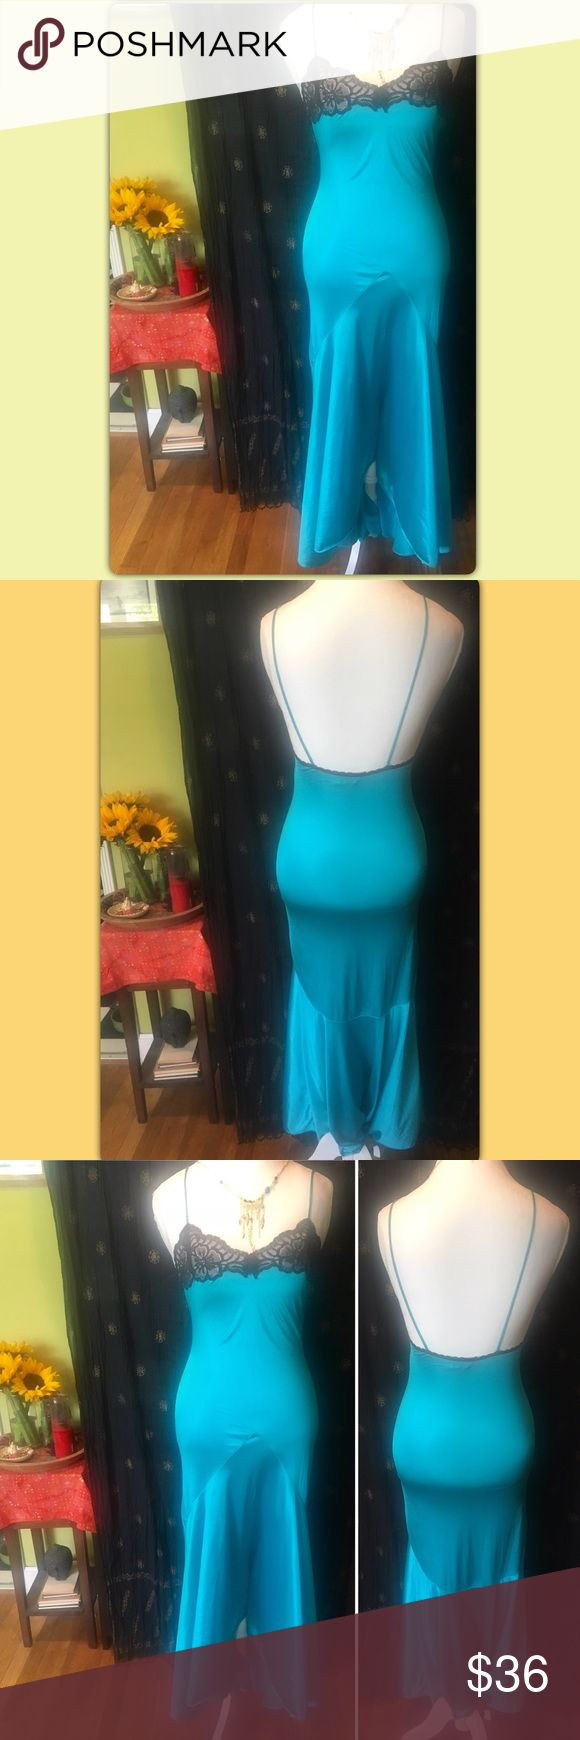 "✨✨ Vintage Negligee ✨✨ 🌞1/2 off bundles EVERYDAY!🌞 ✨✨✨ ✨ GORGEOUS Vintage Val Mode Nightgown ✨ This is so nice ... sexy!! Mermaid style In great condition  Size: Small Bust: About 18"" flat across  Length: 58"" Poly Blend ✨Bundle any 2 or more items and save 50% off✨  Respectful offers are always welcome. I will not accept offers for less than 1/2 off.   Thanks for looking! Val Mode Intimates & Sleepwear Chemises & Slips"